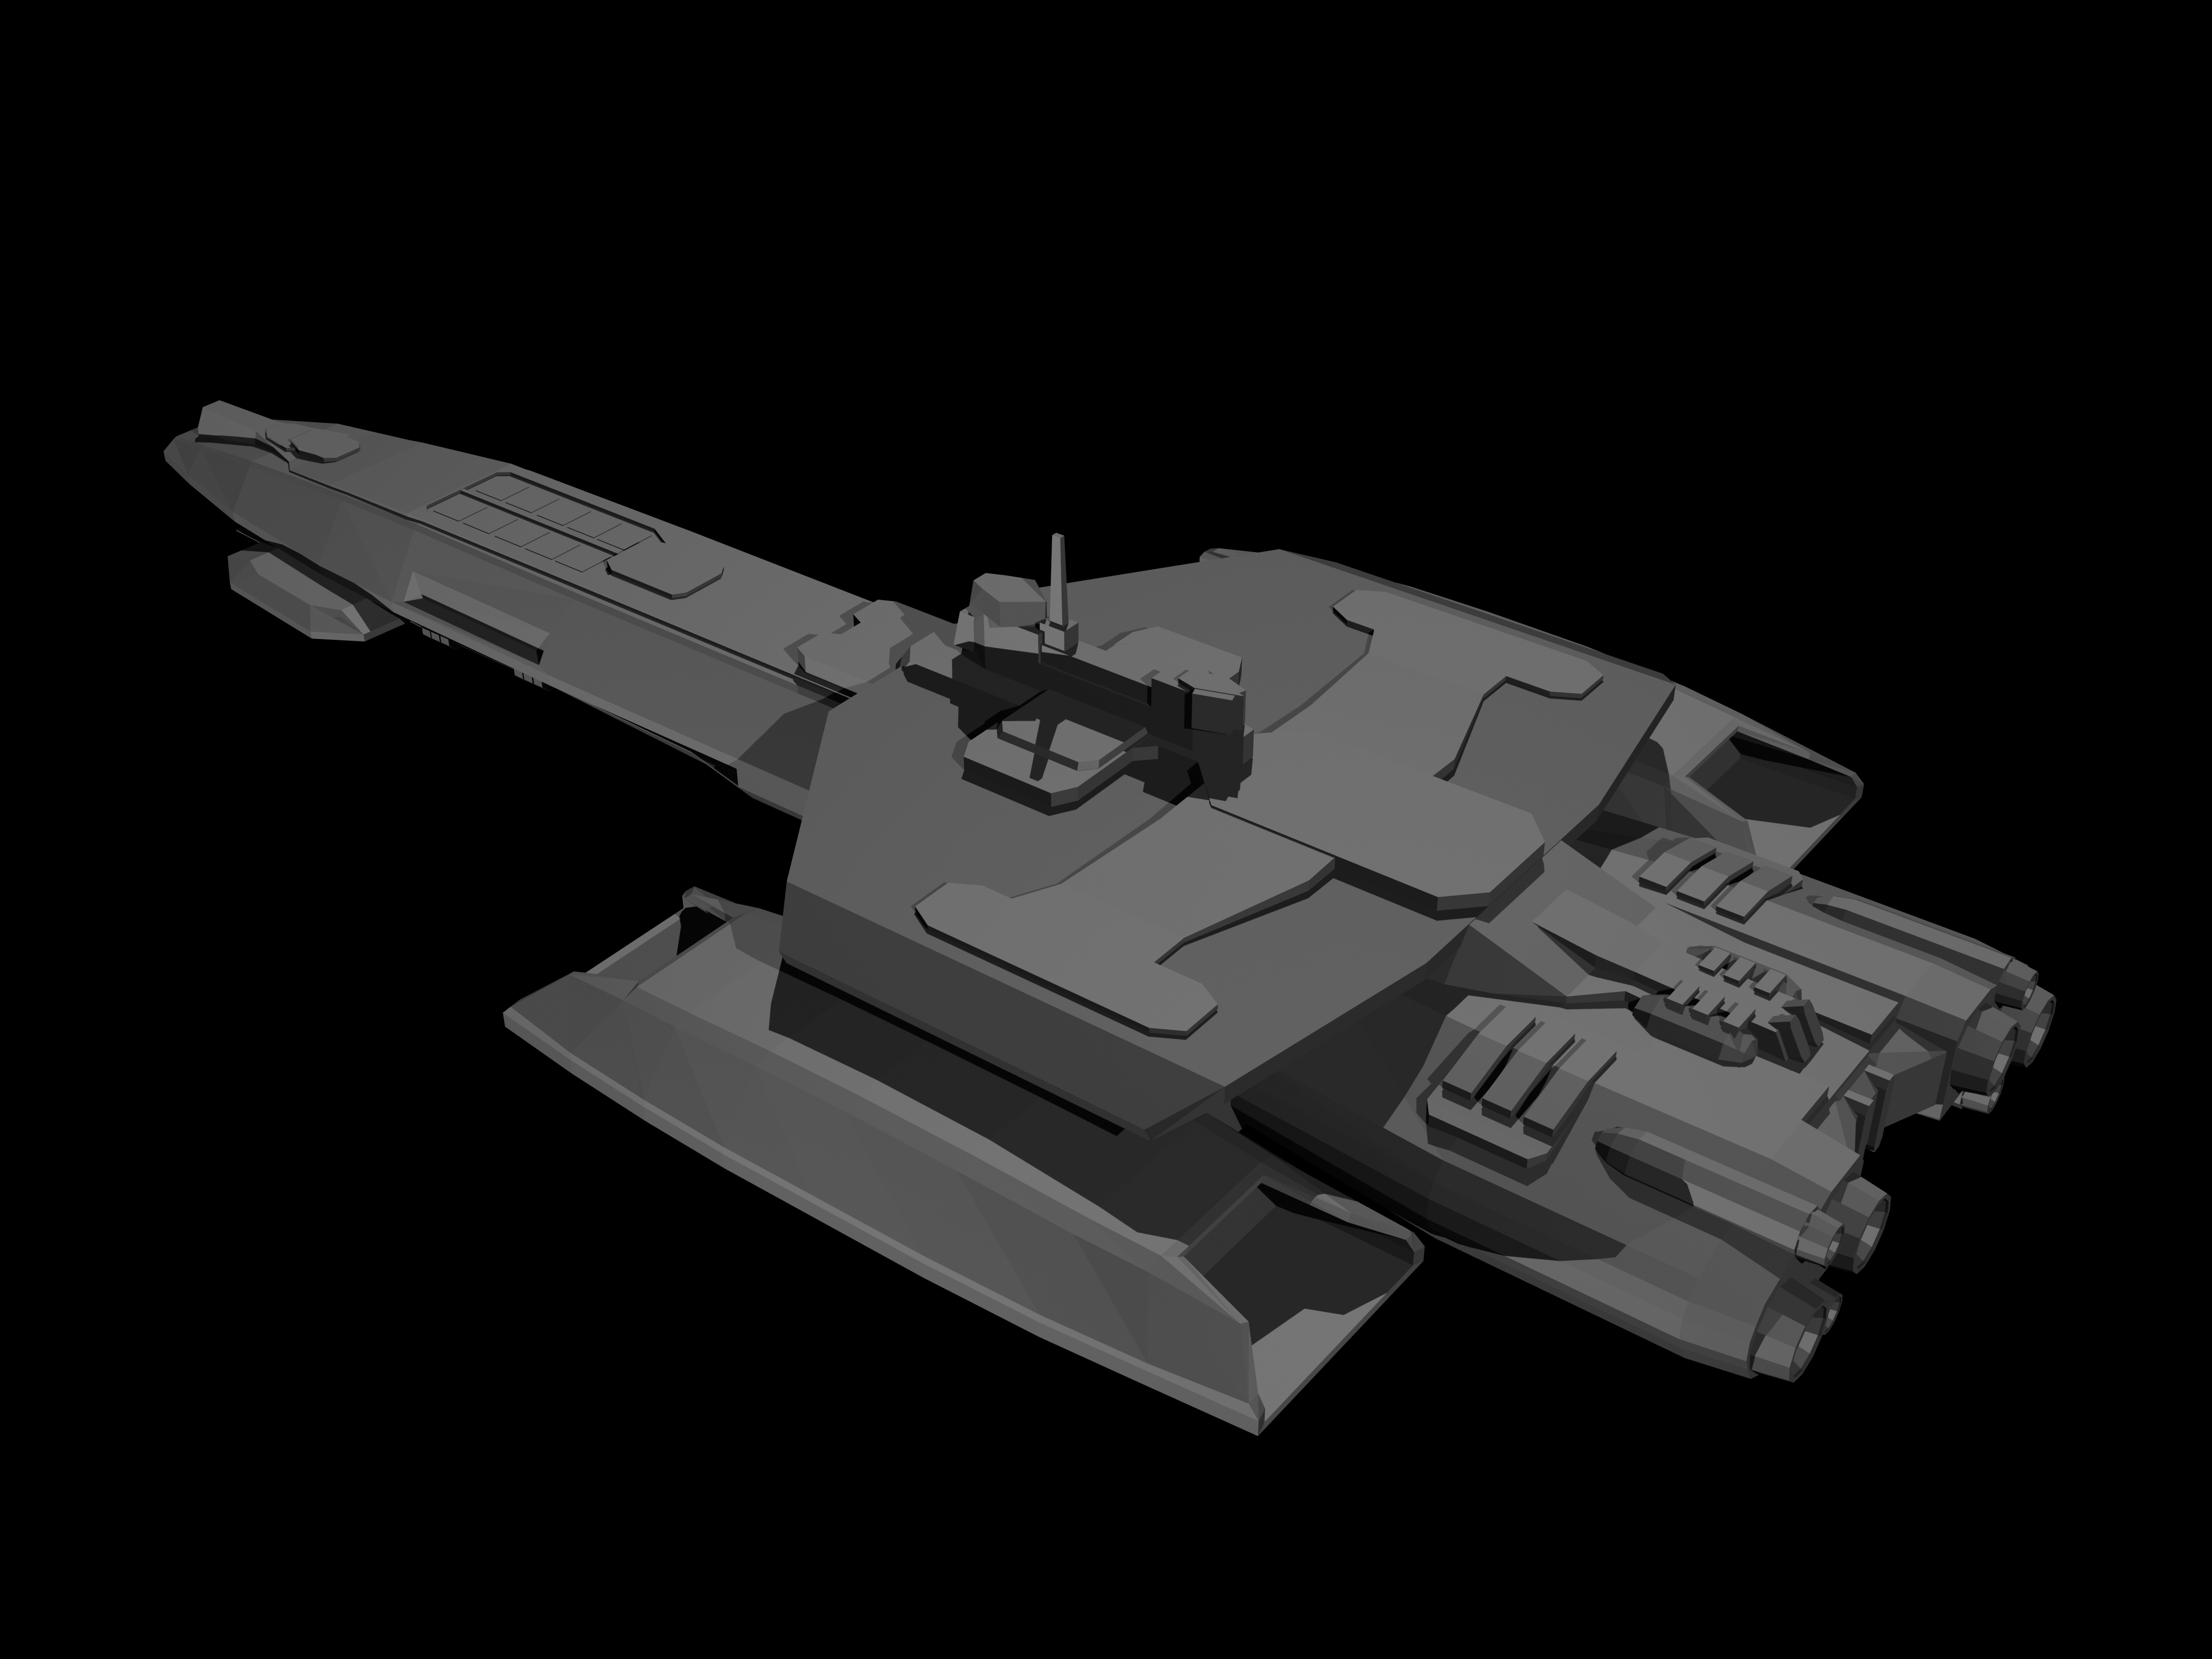 Achilles Class Battleship Wip5 By Epytronomega Designs Interfaces Game